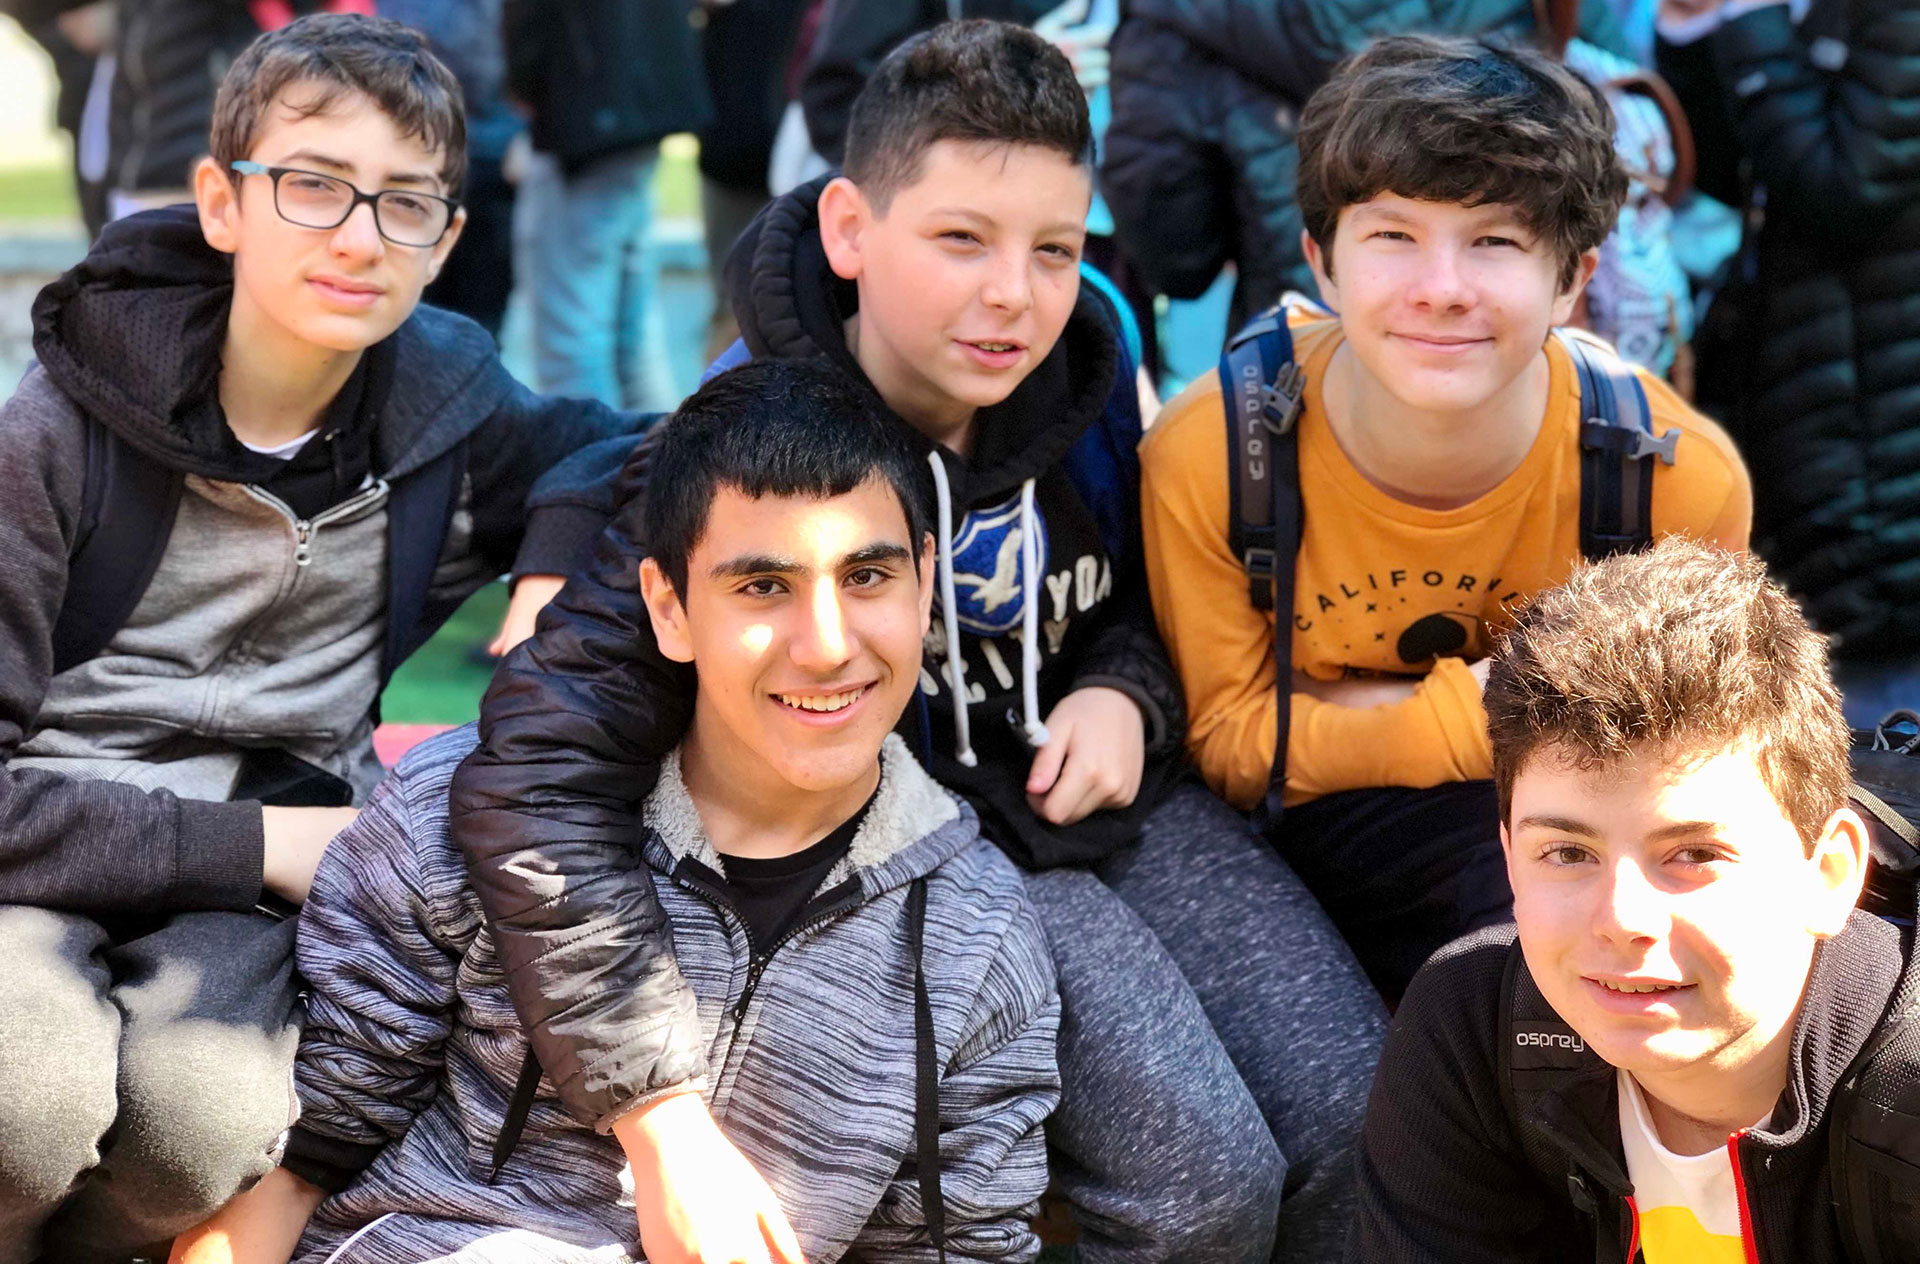 A group of Israeli and American boys sit together outdoors.